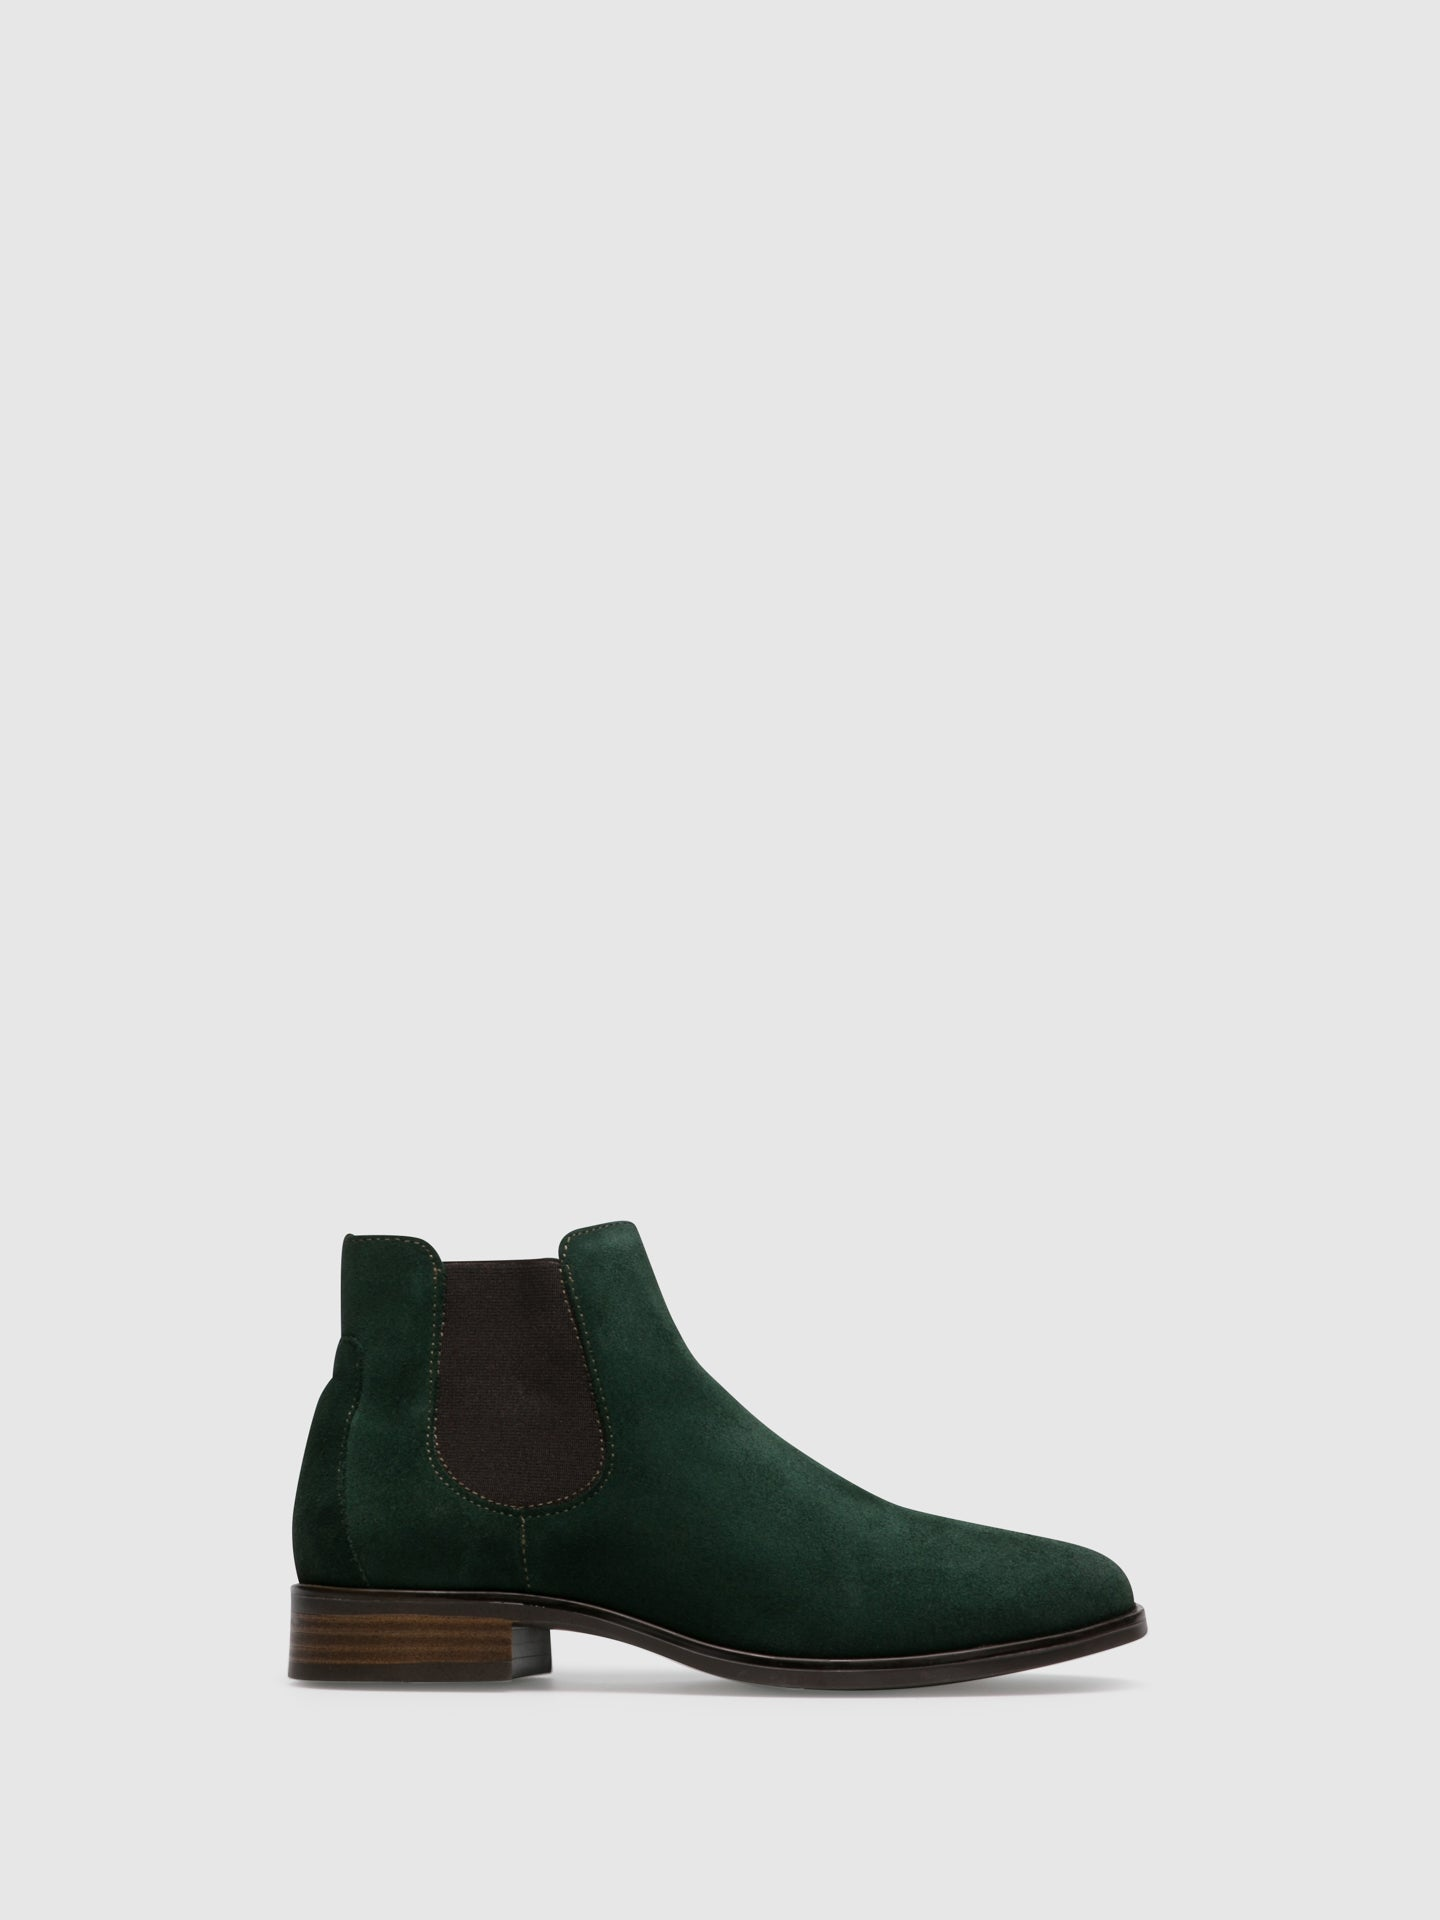 Foreva Green Elasticated Ankle Boots